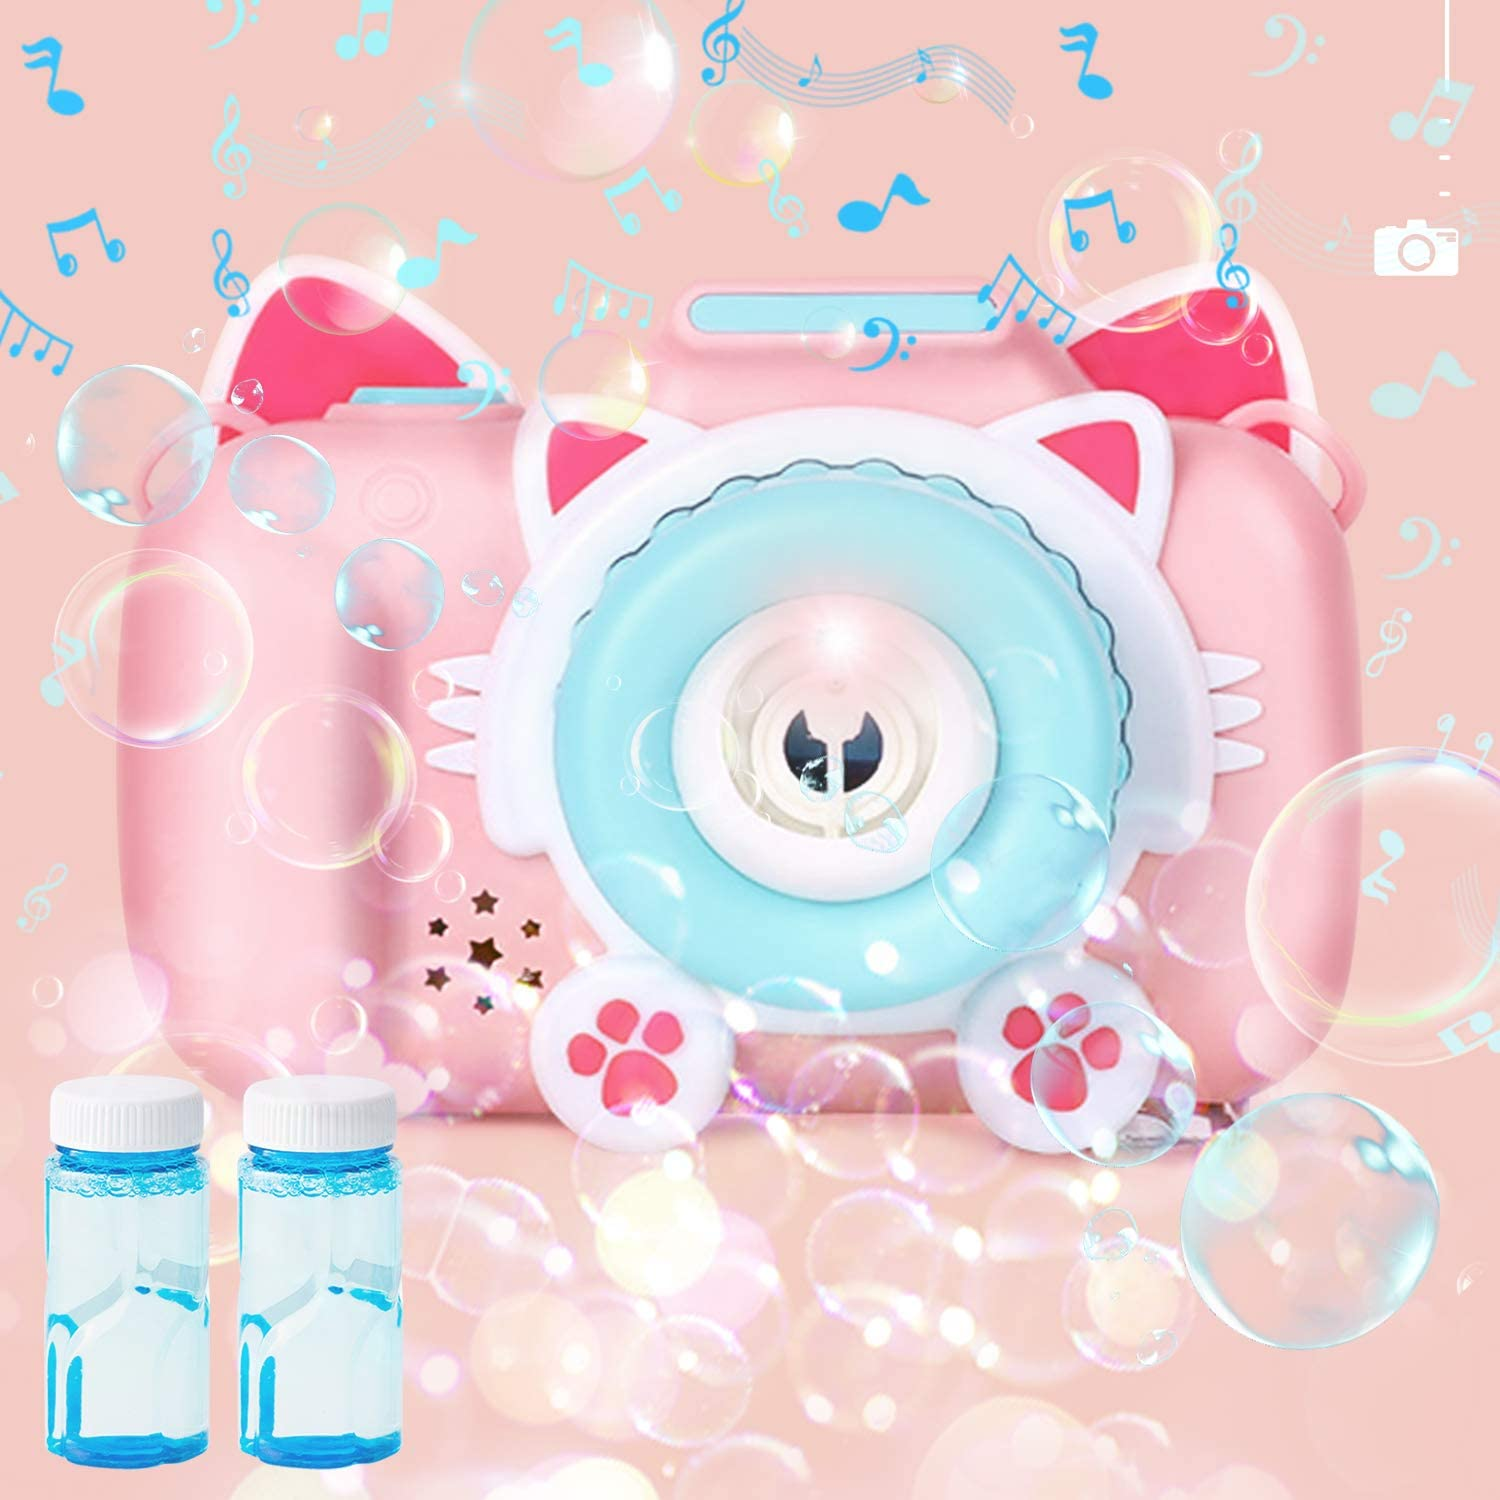 CONDFUL Bubble Machine for Kids, Lovely Cat Bubble Toys with 2 Bubble Refill Solution, Closable Music Bubble Gun with Colorful Gradient Light, Kids Bubble Machine for Outdoor/Indoor Party Birthday